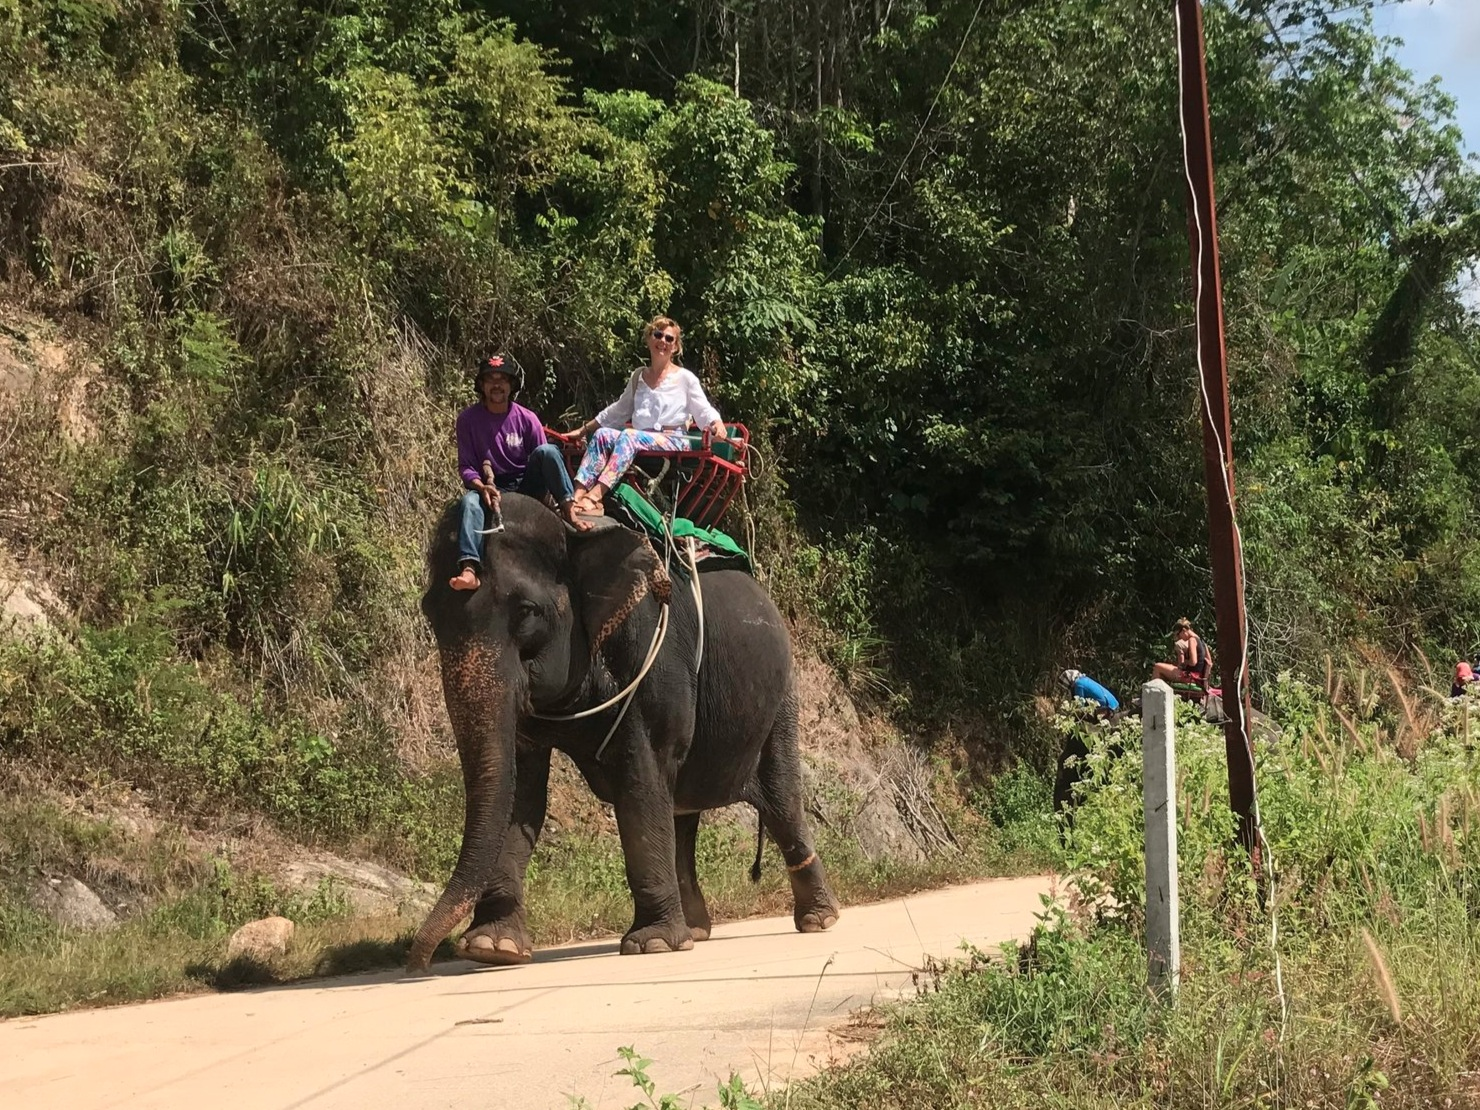 A tourist riding an elephant in Phuket, Thailand. Though elephants are considered domestic animals in the country, they must endure a brutal crushing of the spirit in order to serve man.